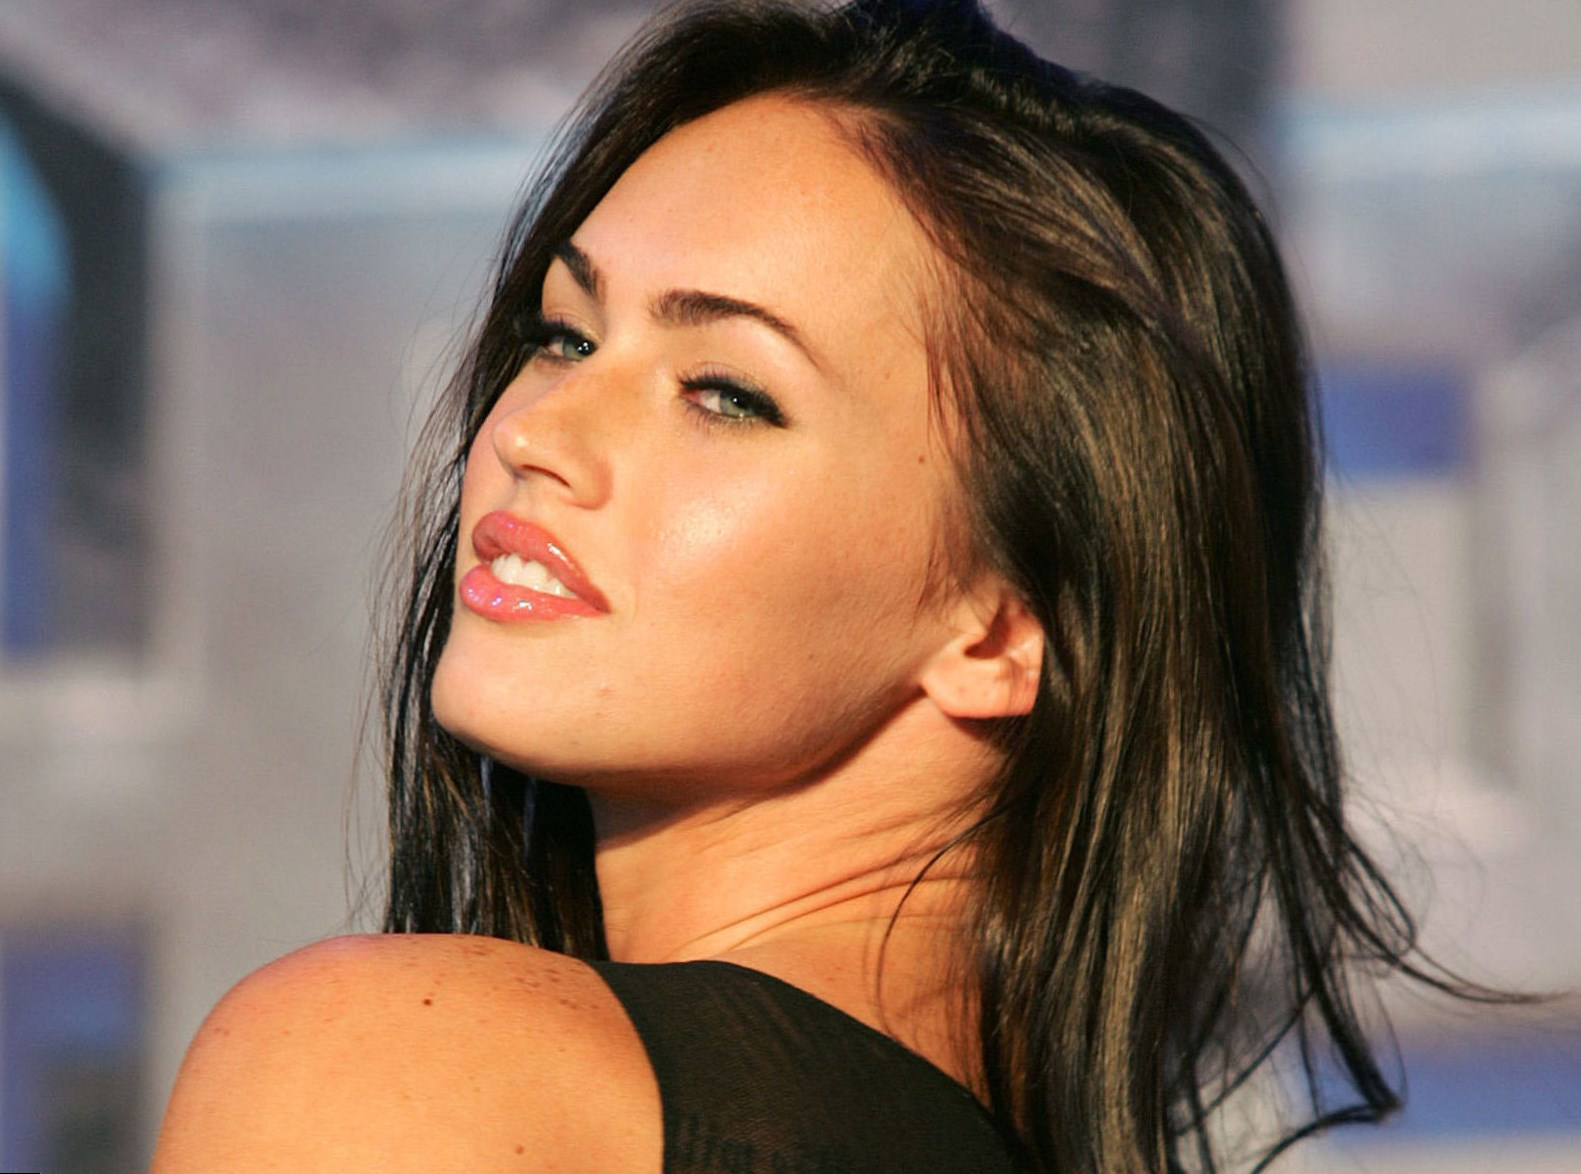 Megan-Fox-Wiki-Biography-Age-Height-Weight-Profile-Body-Measurement